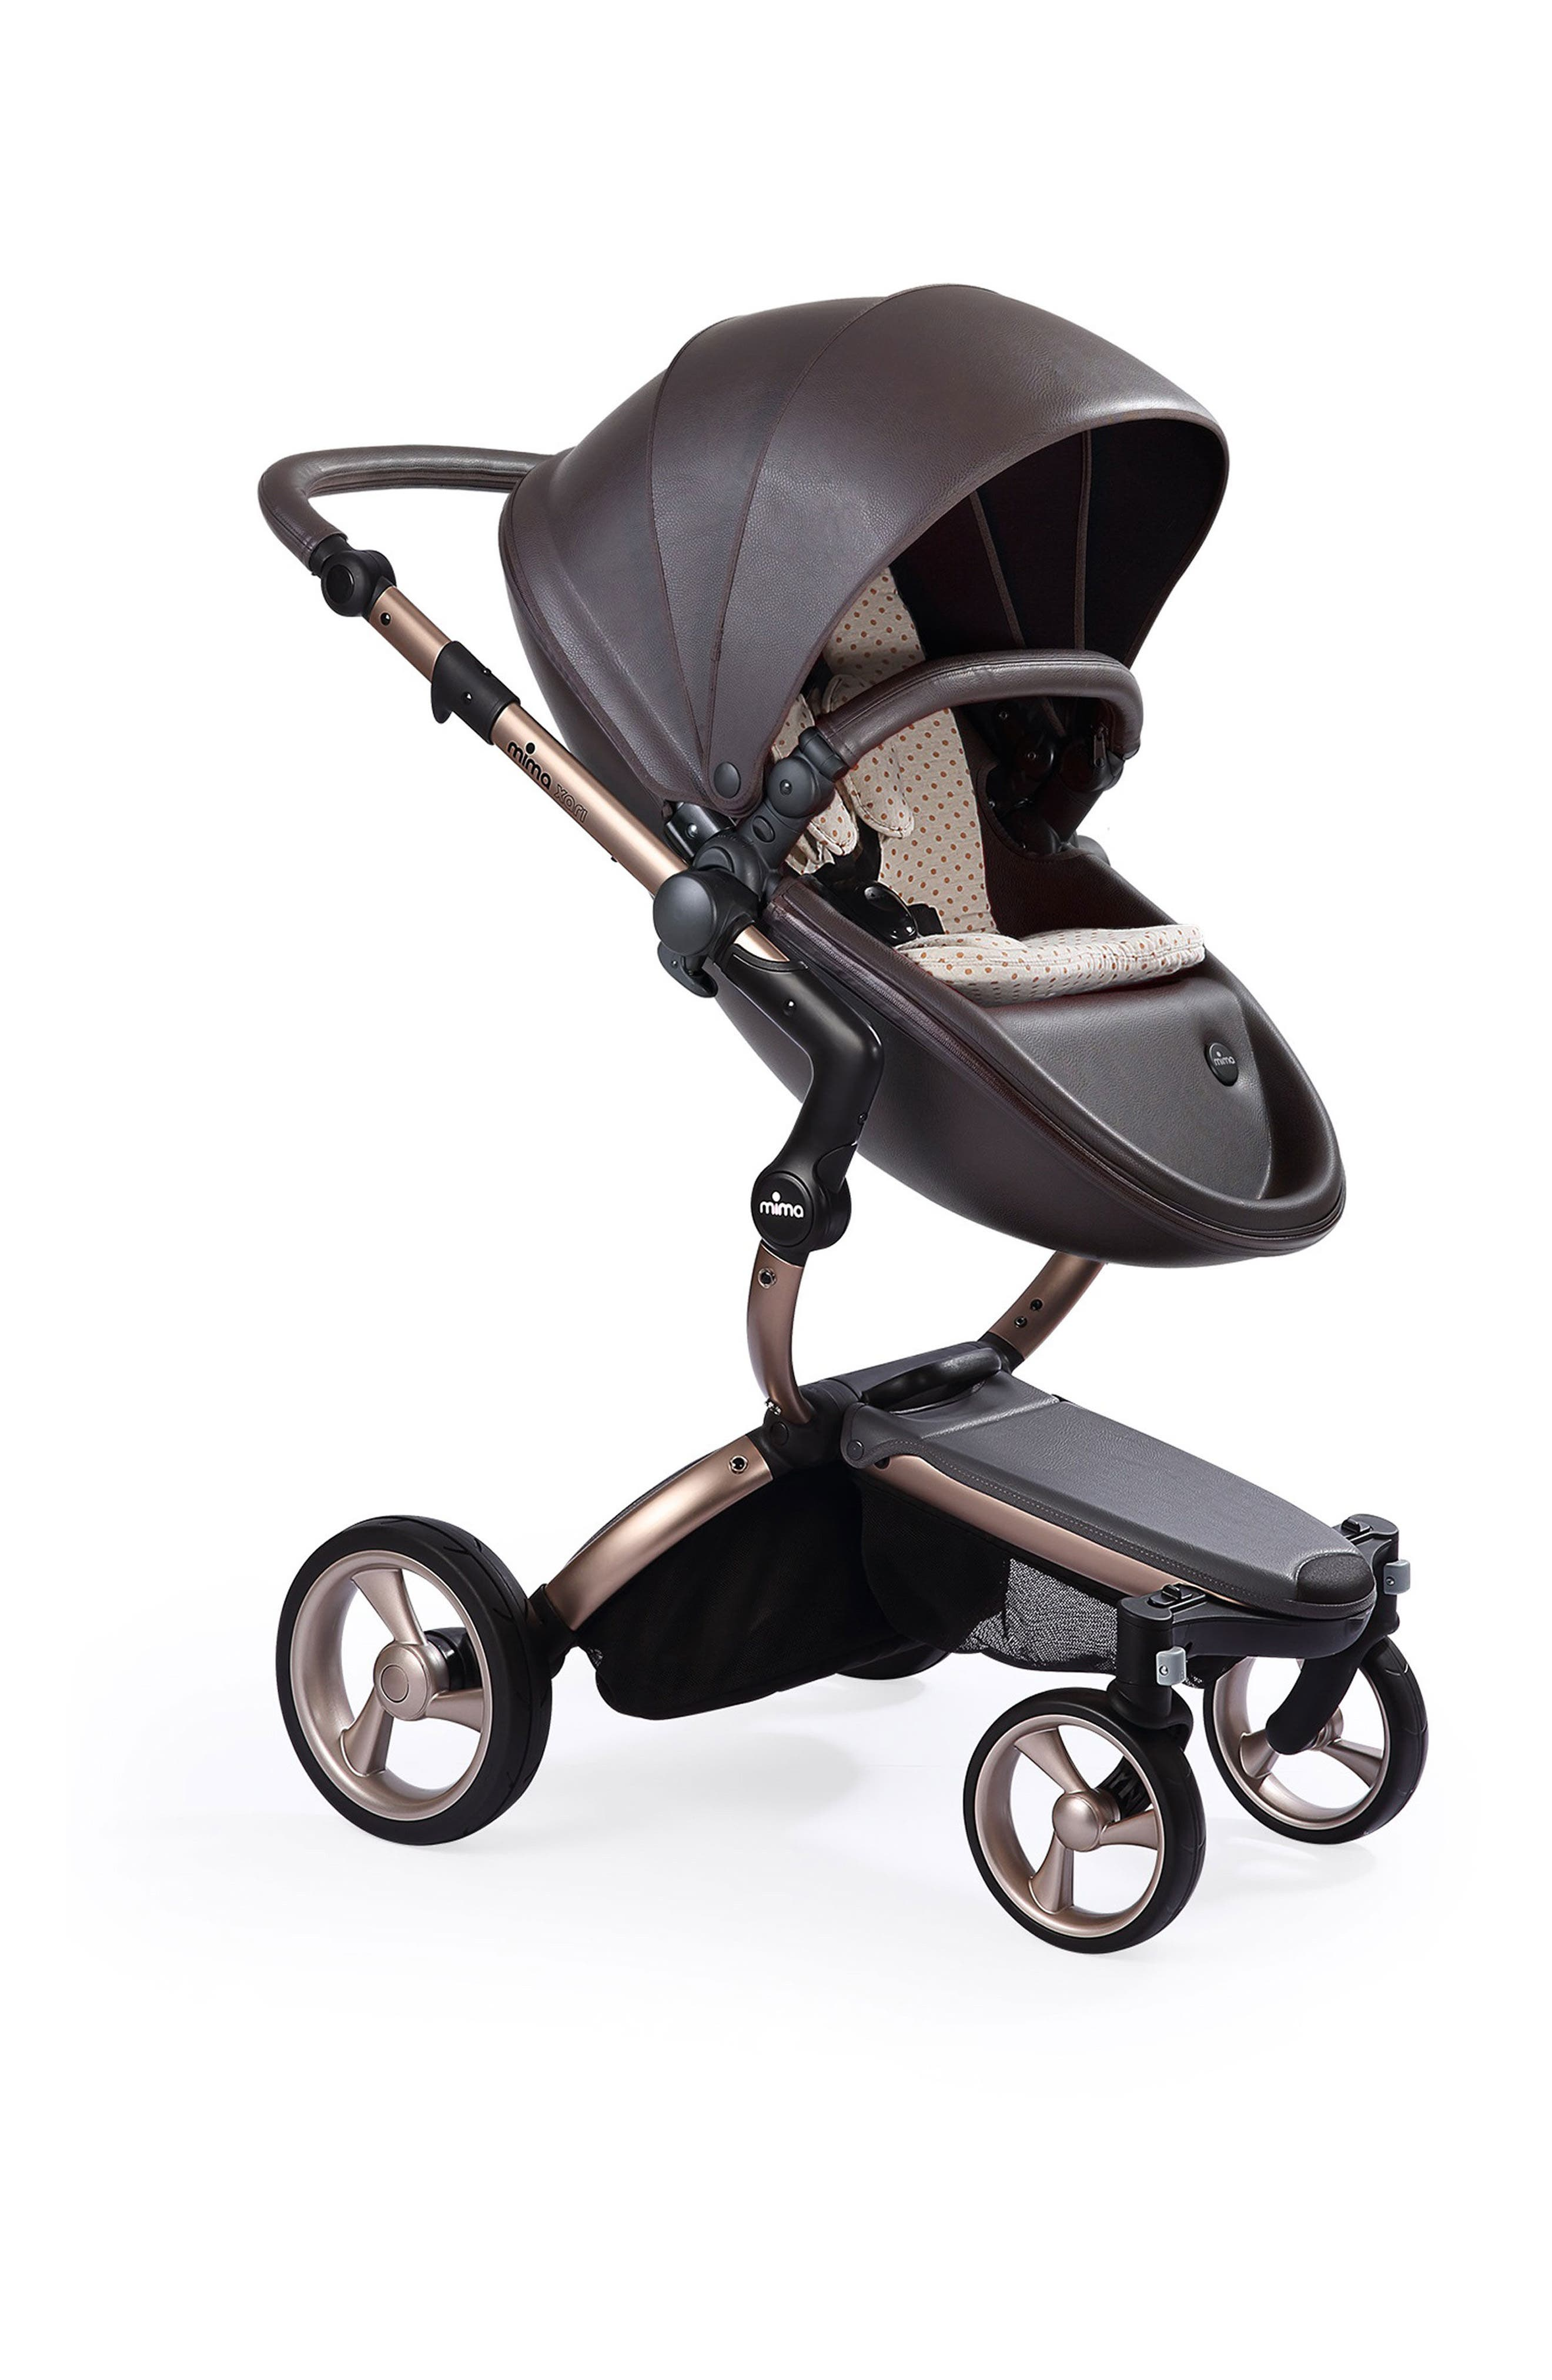 Alternate Image 1 Selected - Mima Xari Rose Gold Chassis Stroller with Reversible Reclining Seat & Carrycot